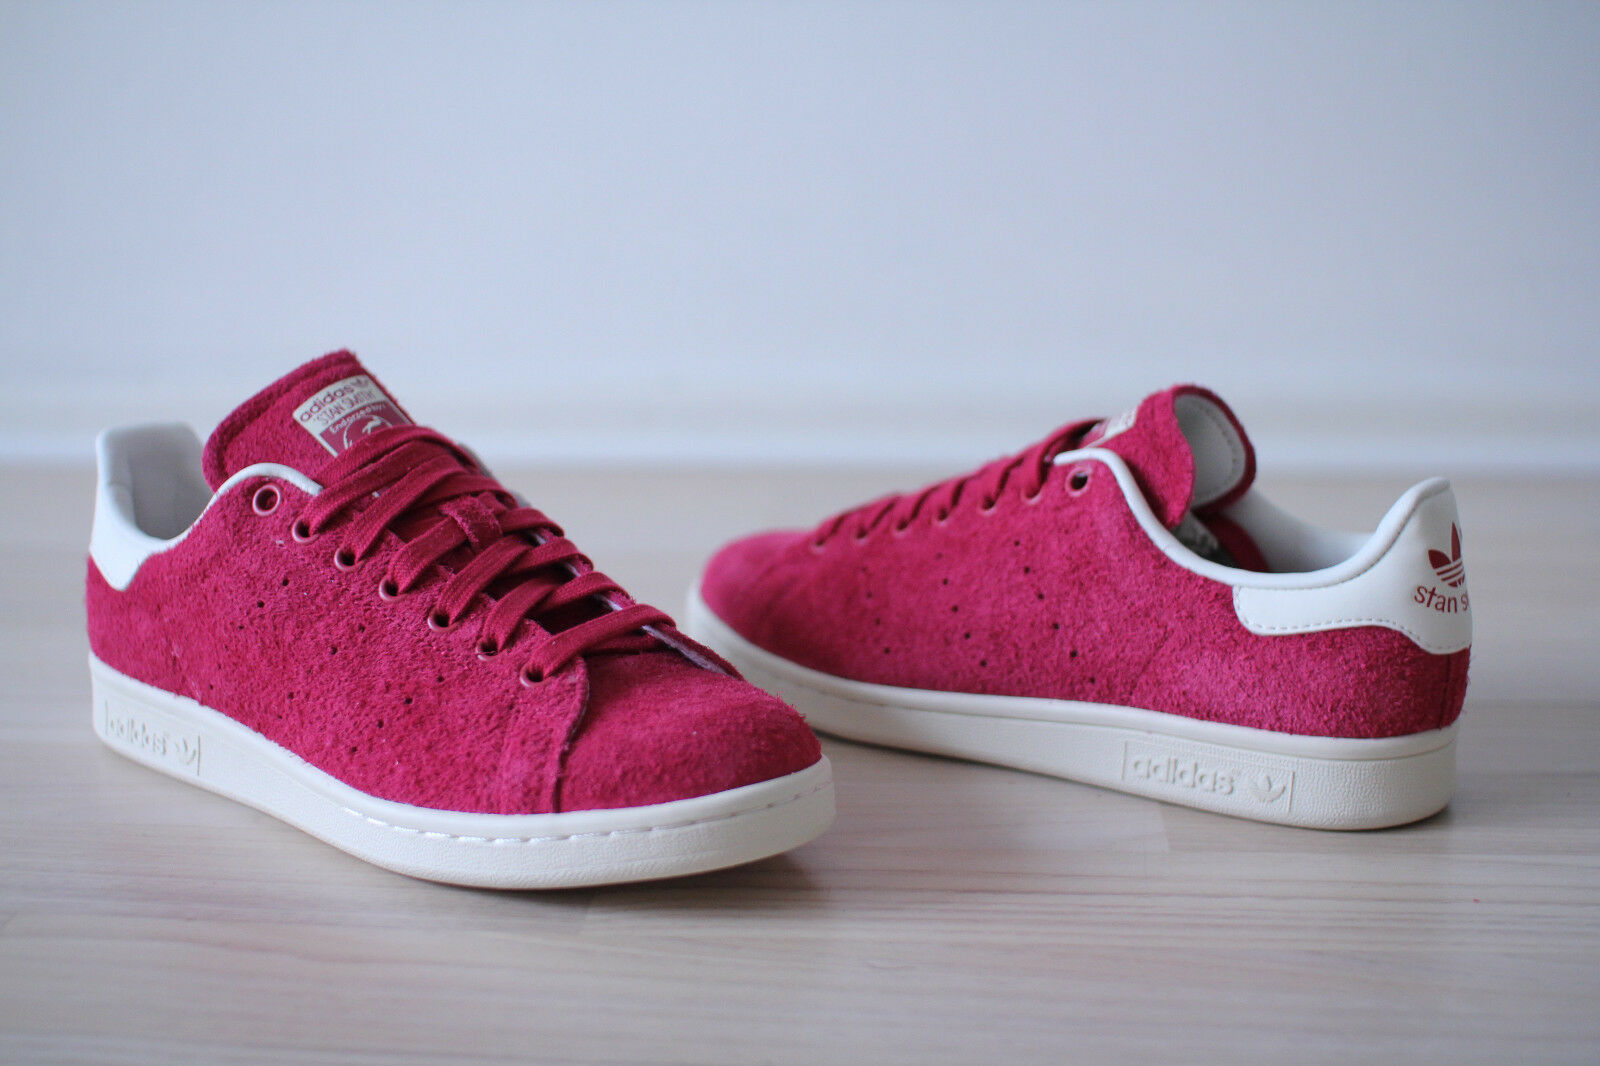 Adidas Stan Smith NEU Woman Berry Rot Weiß Gr. 38,39,40,41,42 NEU Smith & OVP 0019f9